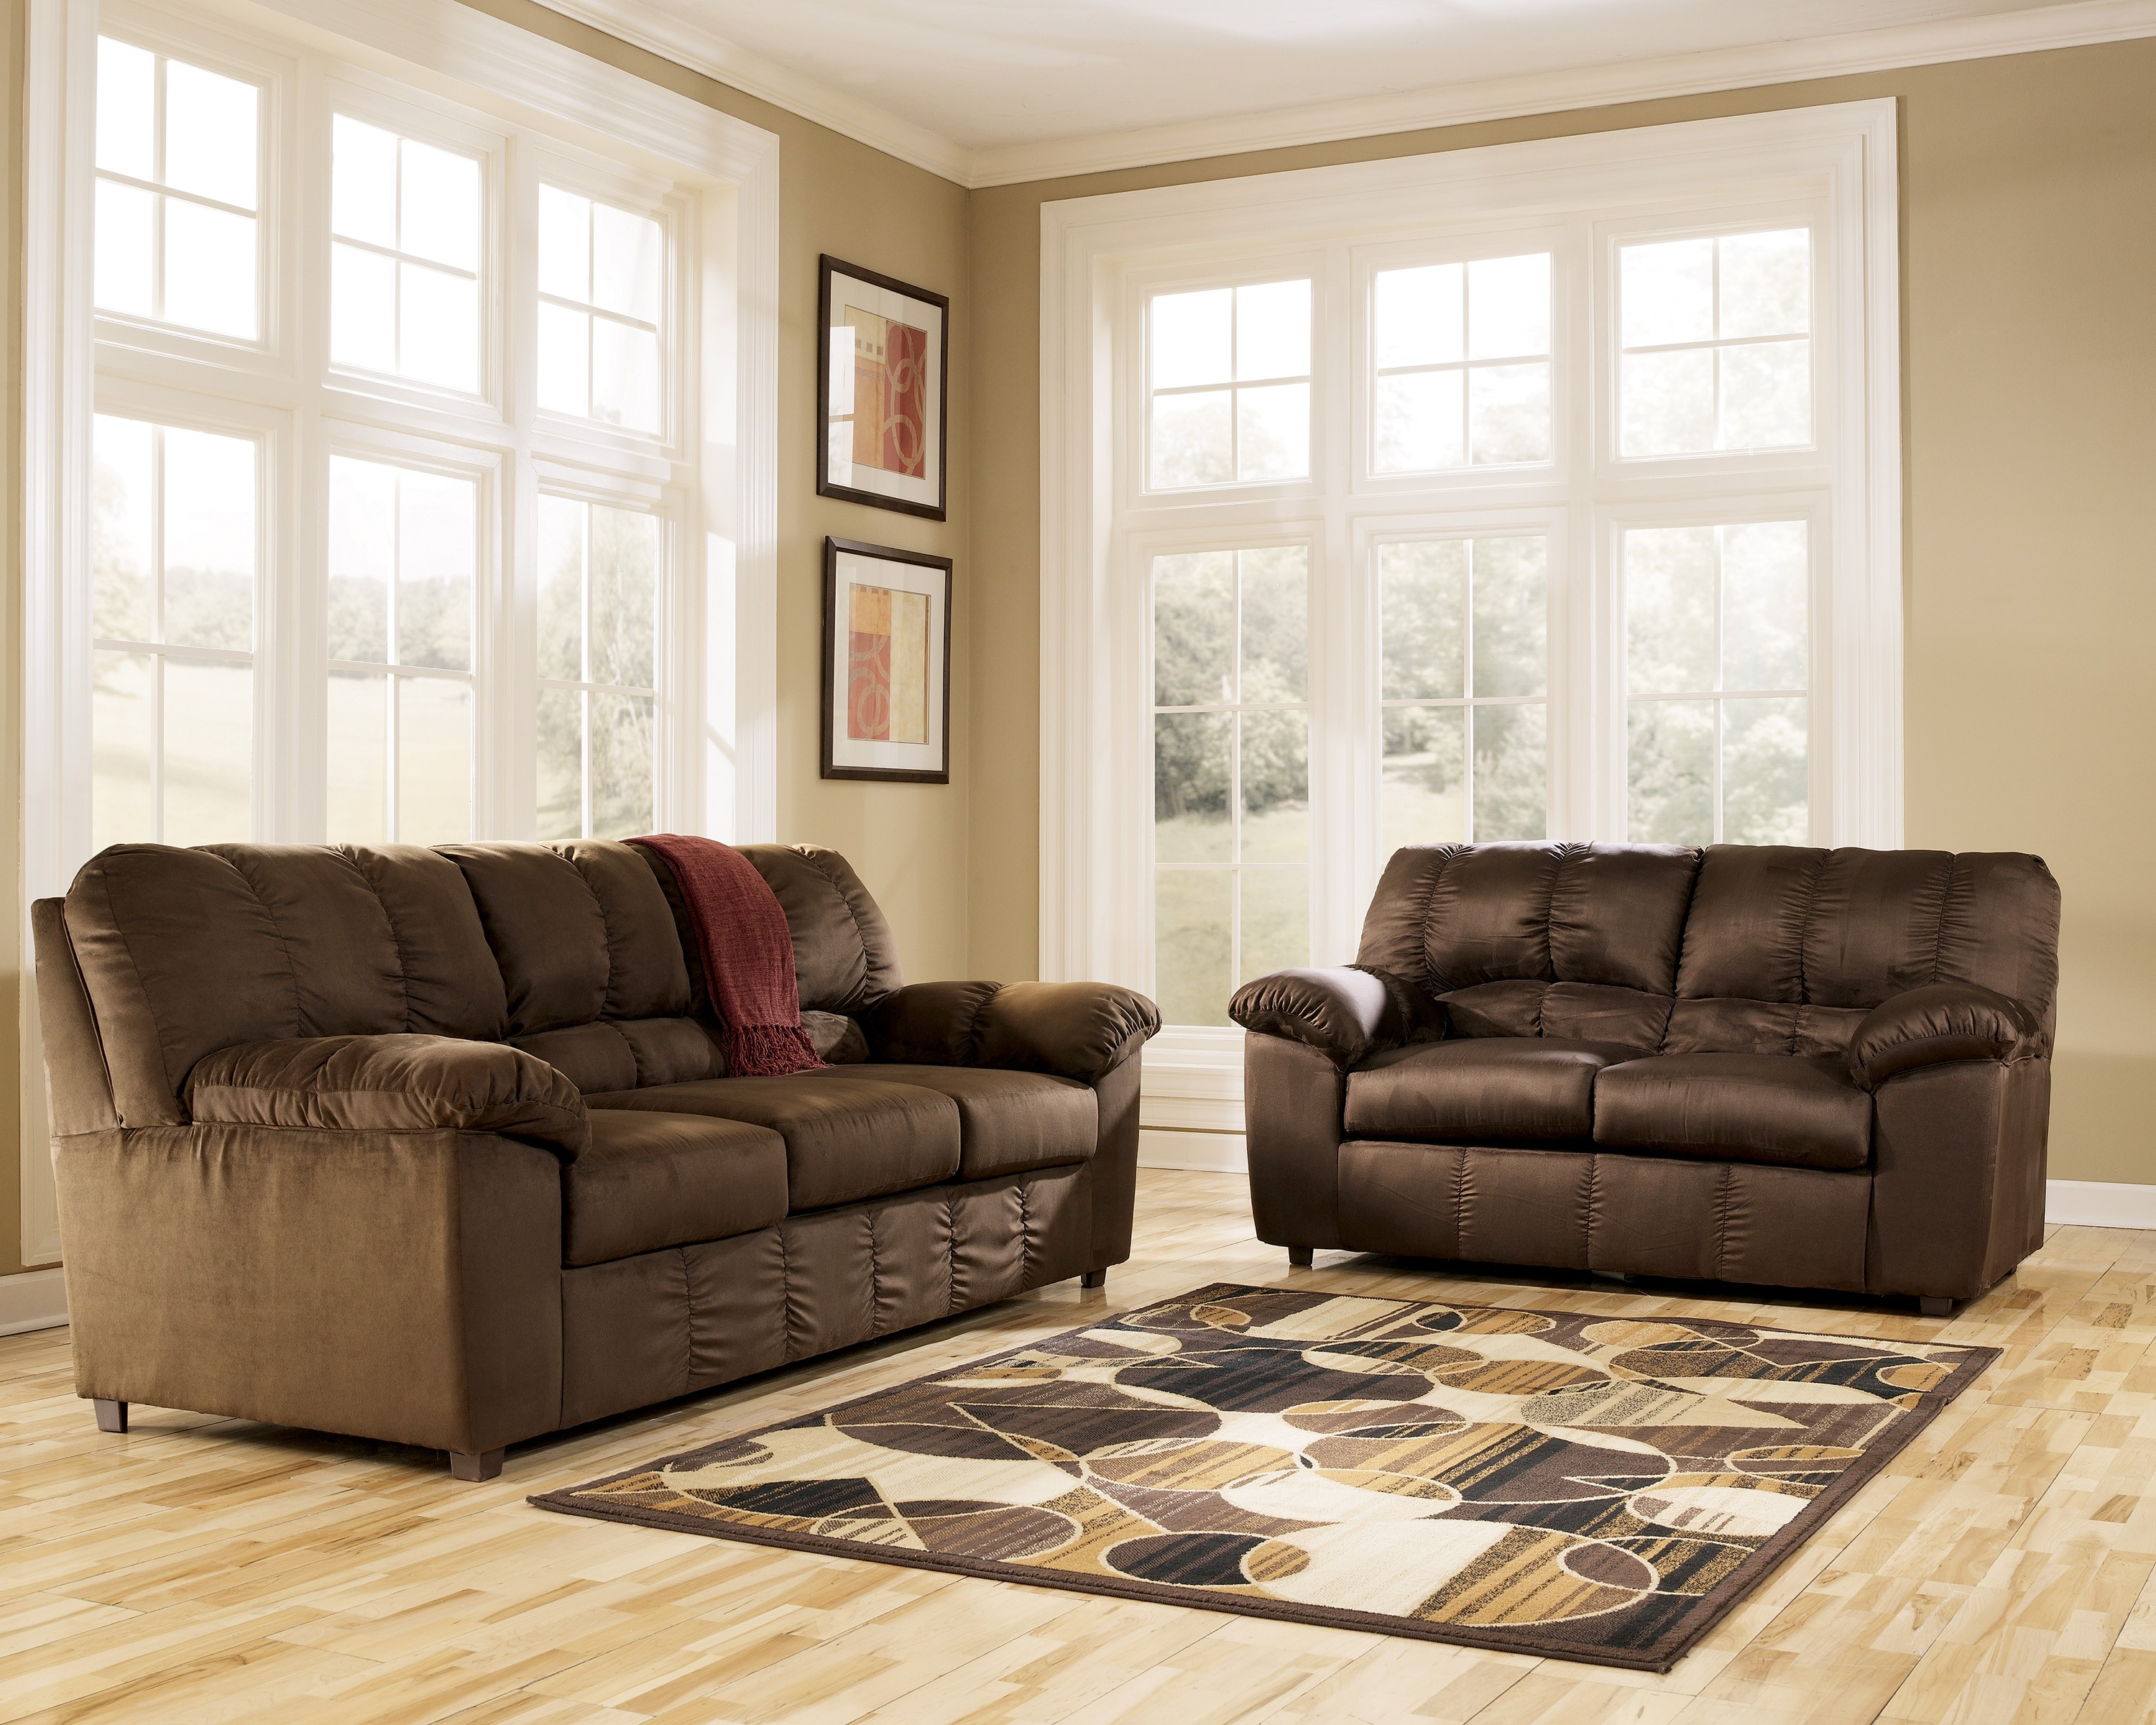 Vineland Furniture Repair Find Furniture Refinishing